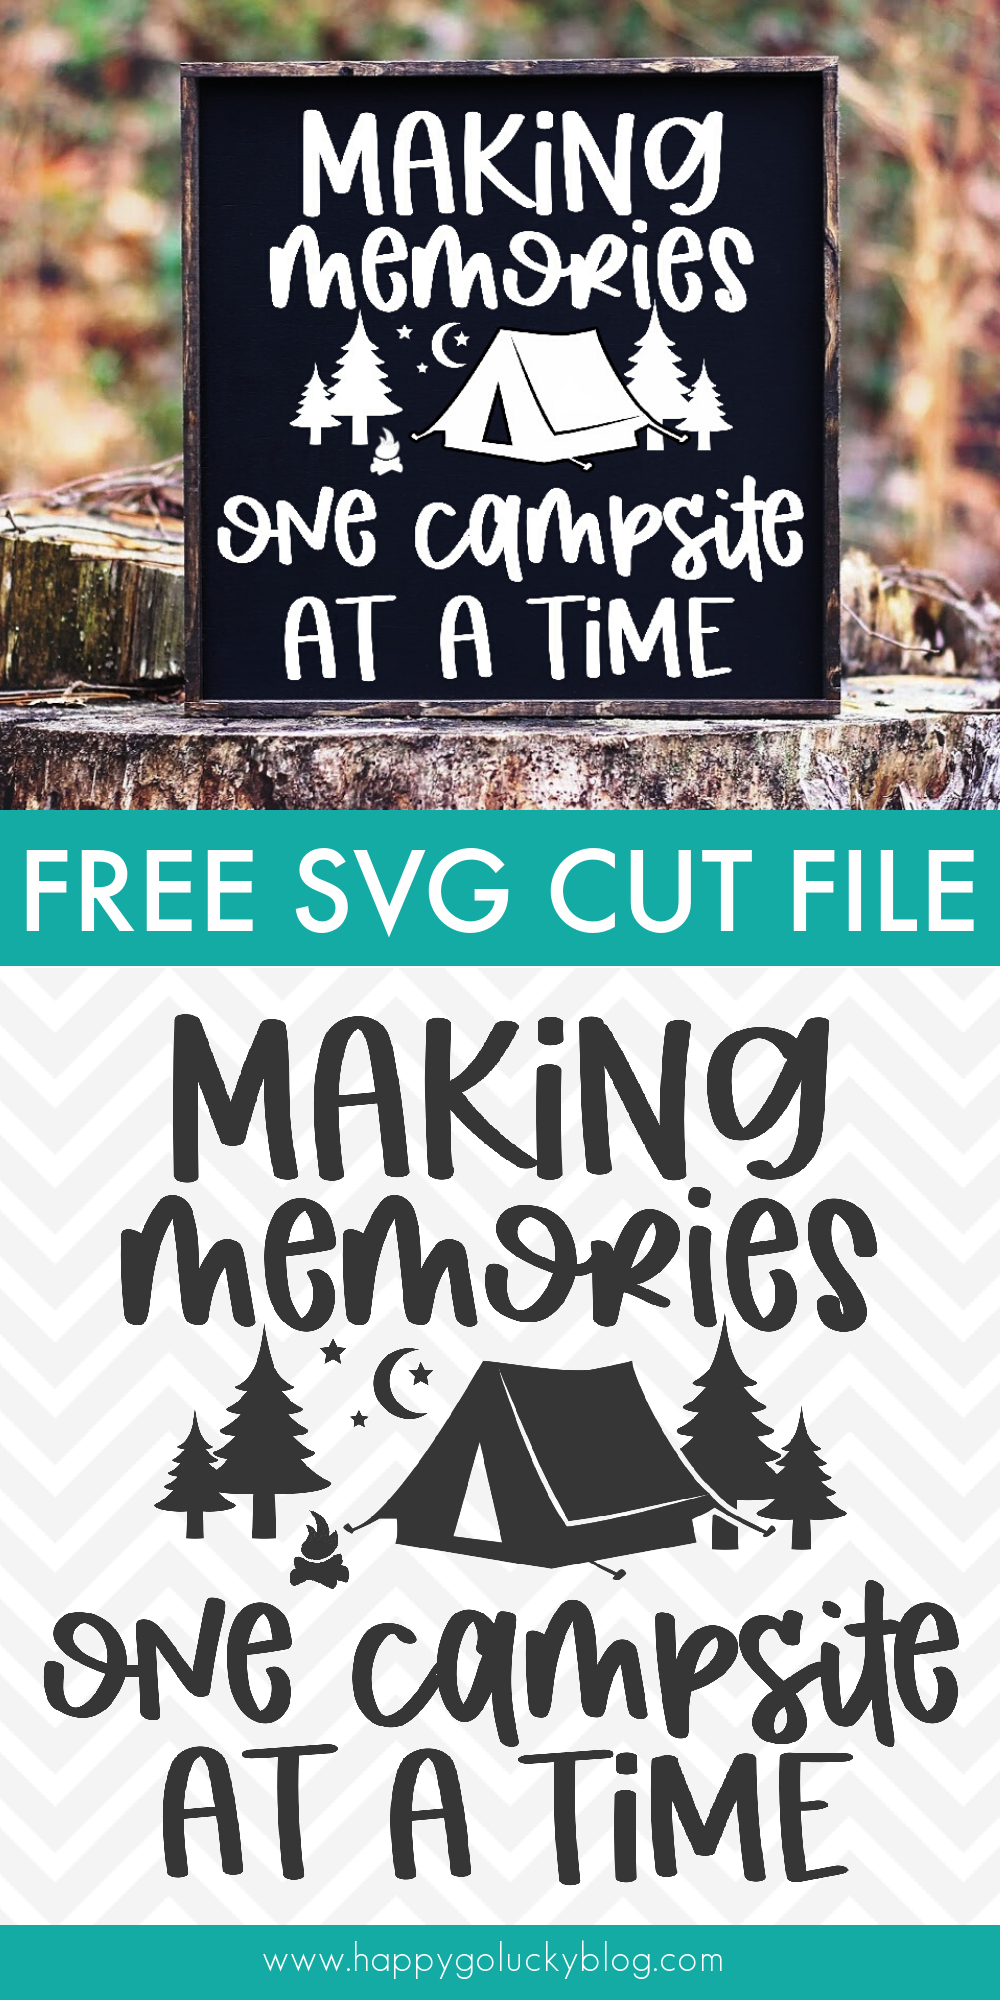 Free SVG Cut File Making Memories One Campsite at a Time